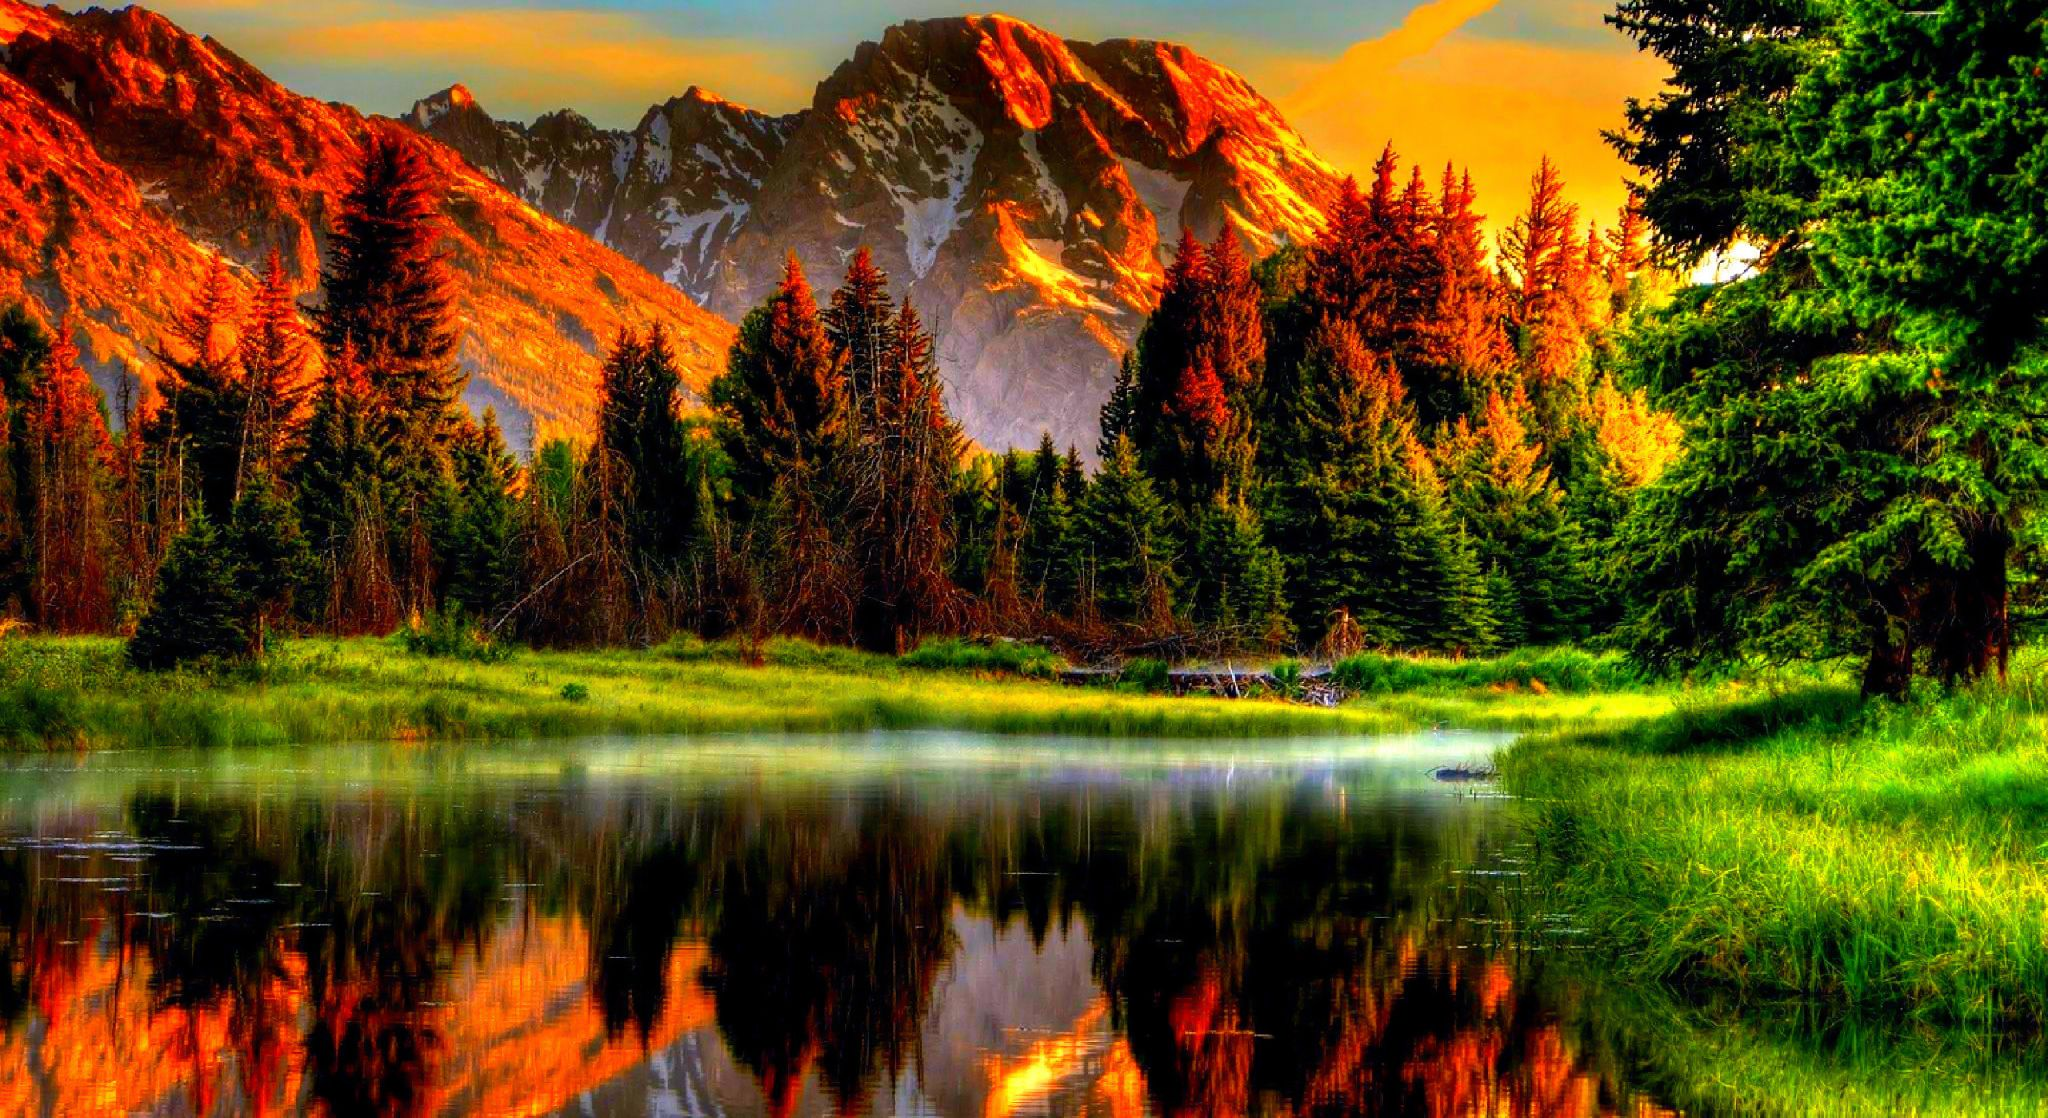 wallpapers of landscape free - photo #39